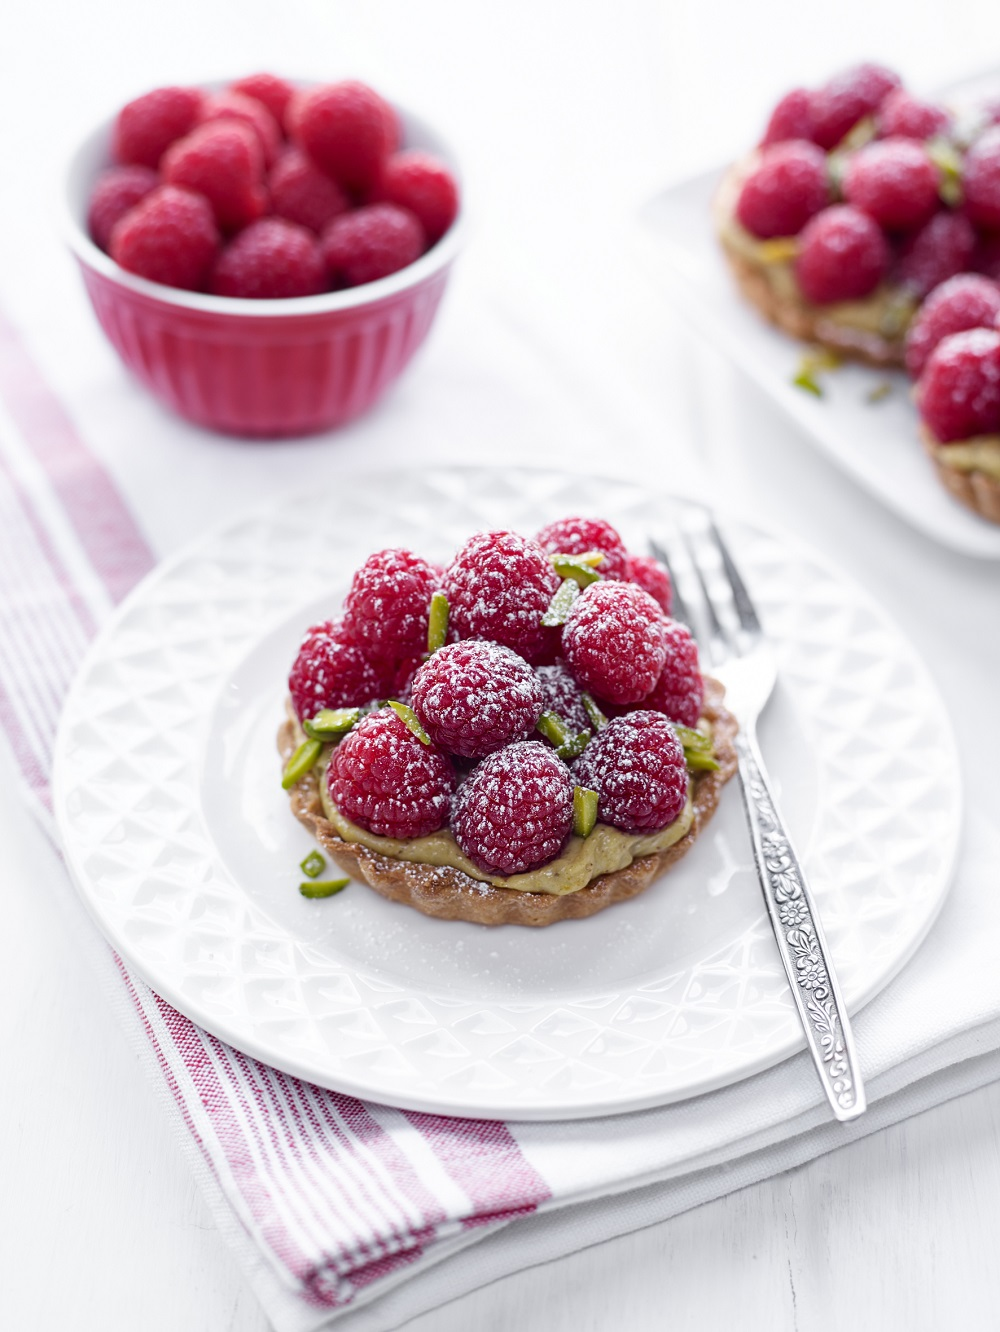 BerryWorld Raspberry And Pistachio Tarts